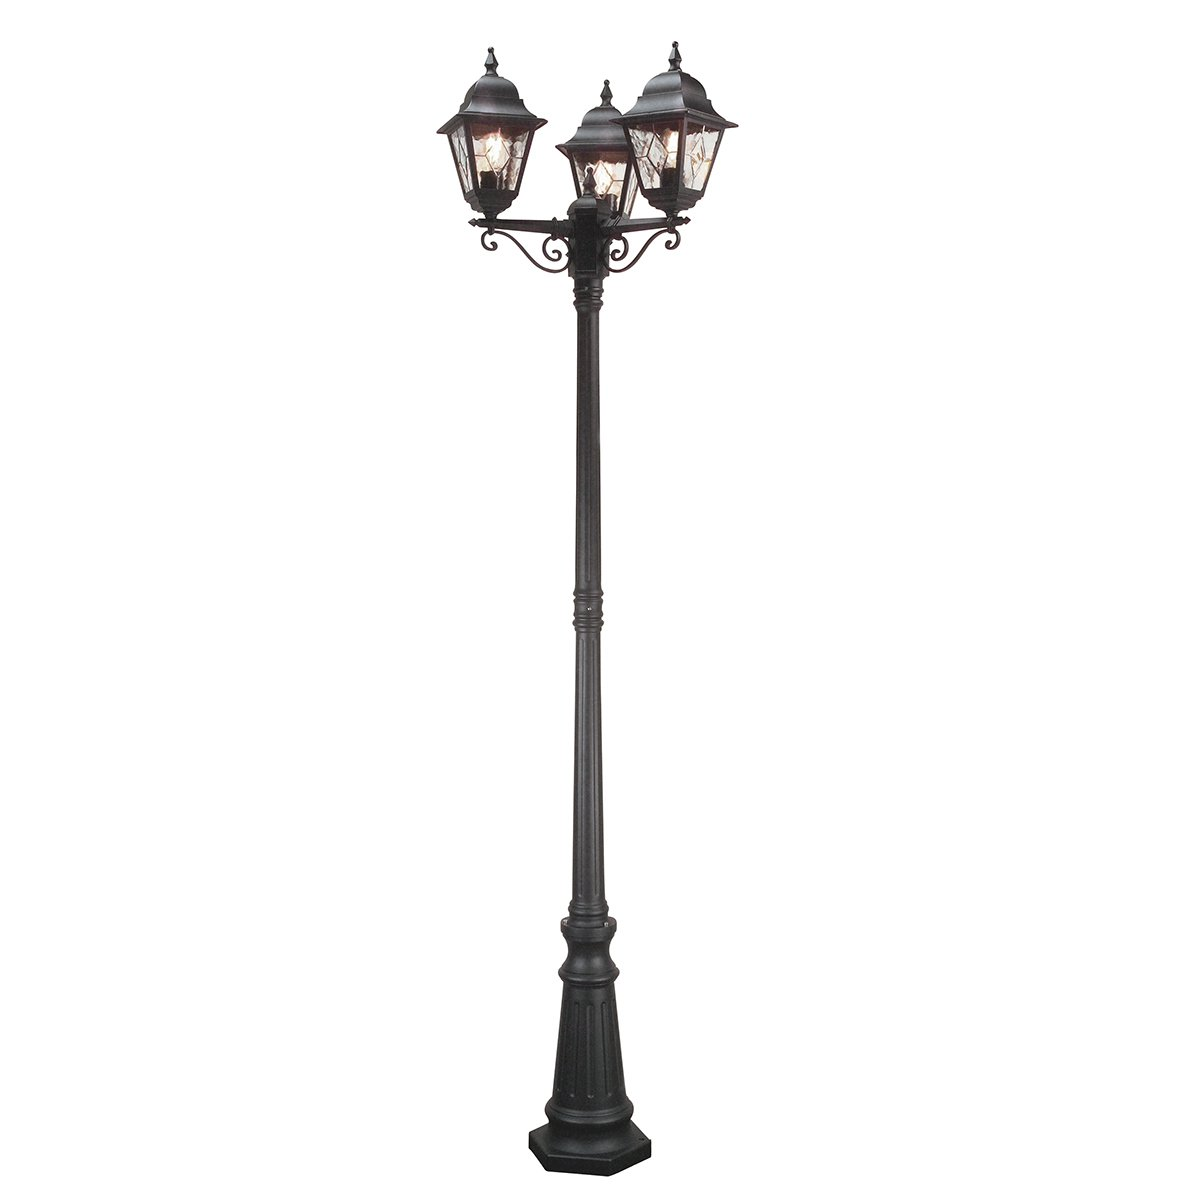 Elstead NR8 Norfolk Triple Headed Leaded Lantern Post in Black